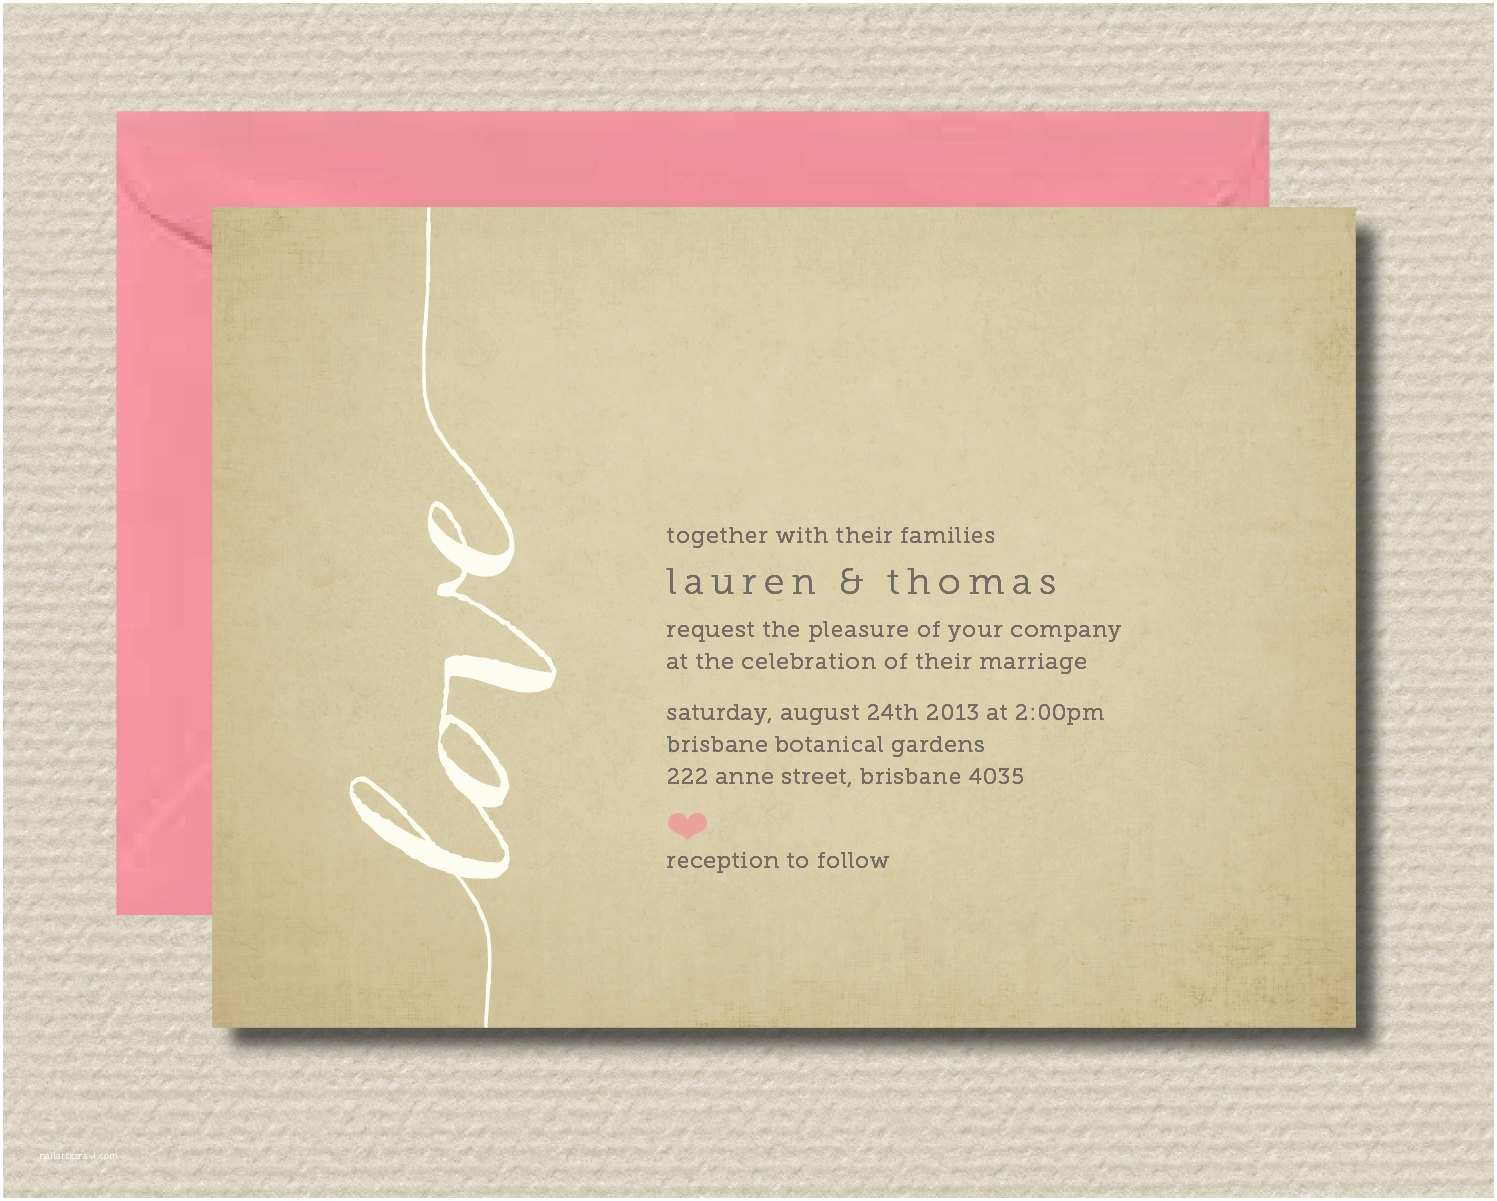 Rsvp Wedding Invitation Wording Wedding Invitation Rsvp Wording